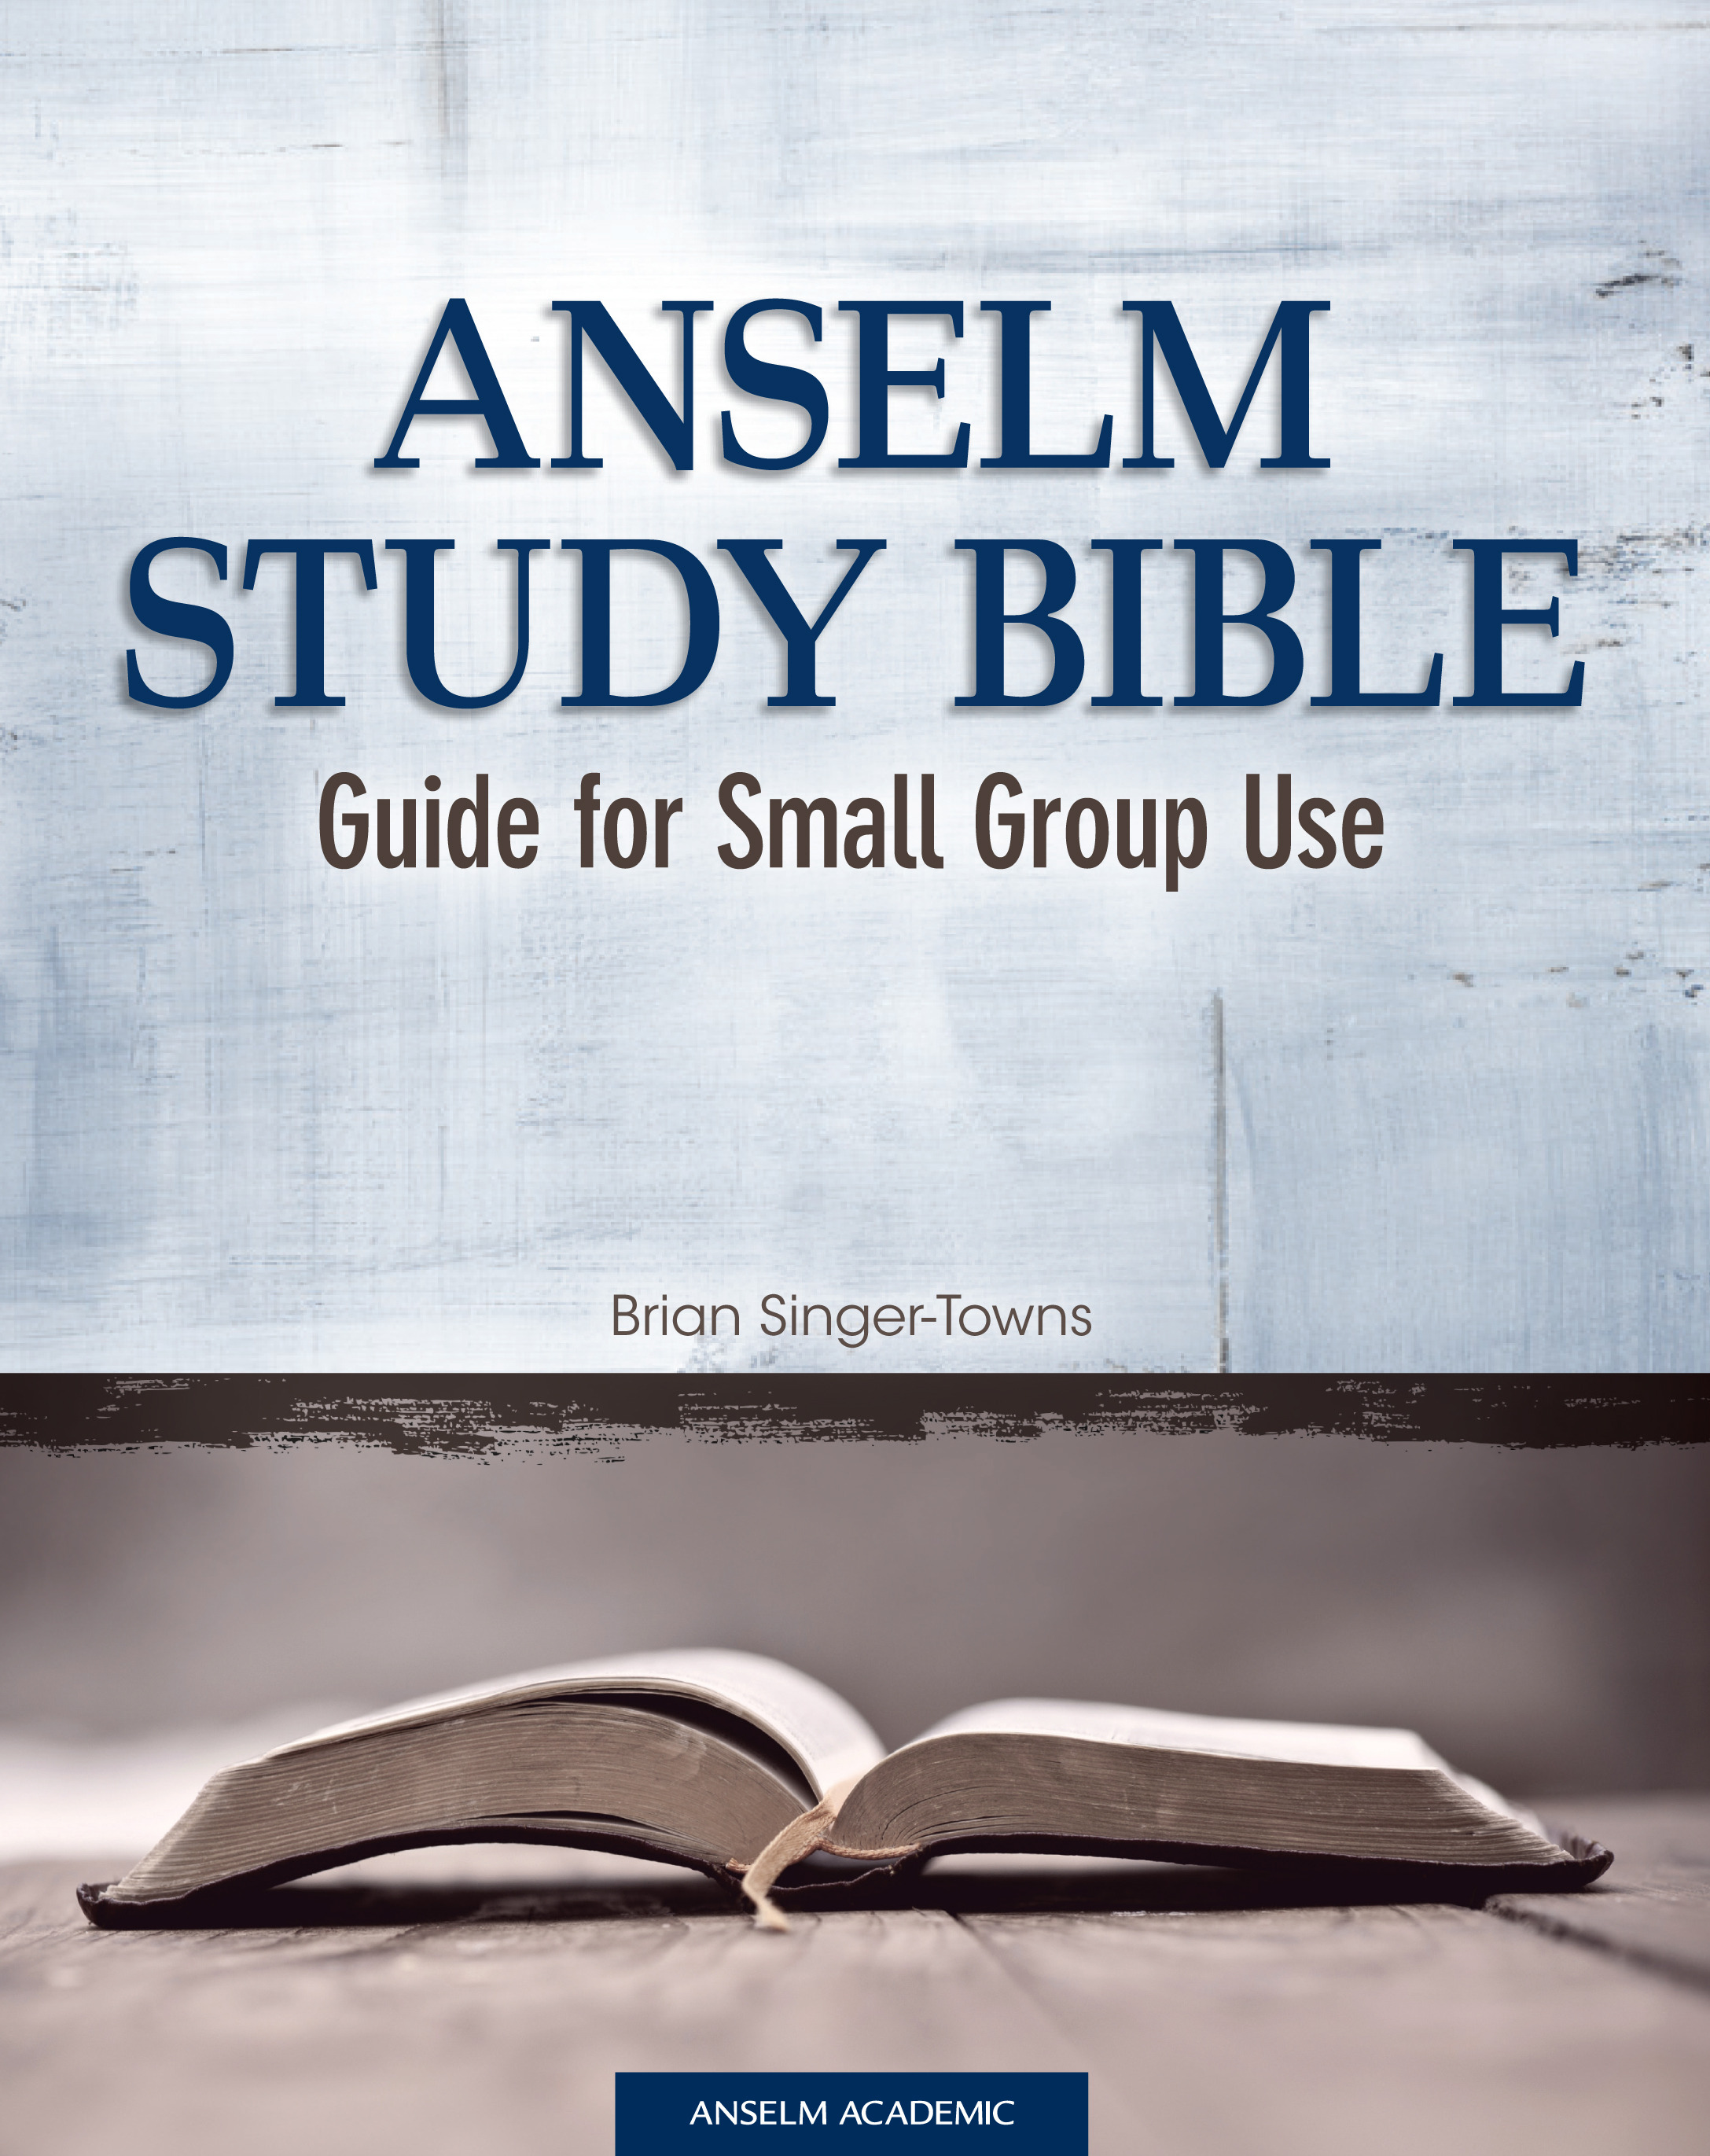 Anselm Study Bible Guide for Small Group Use - PDF